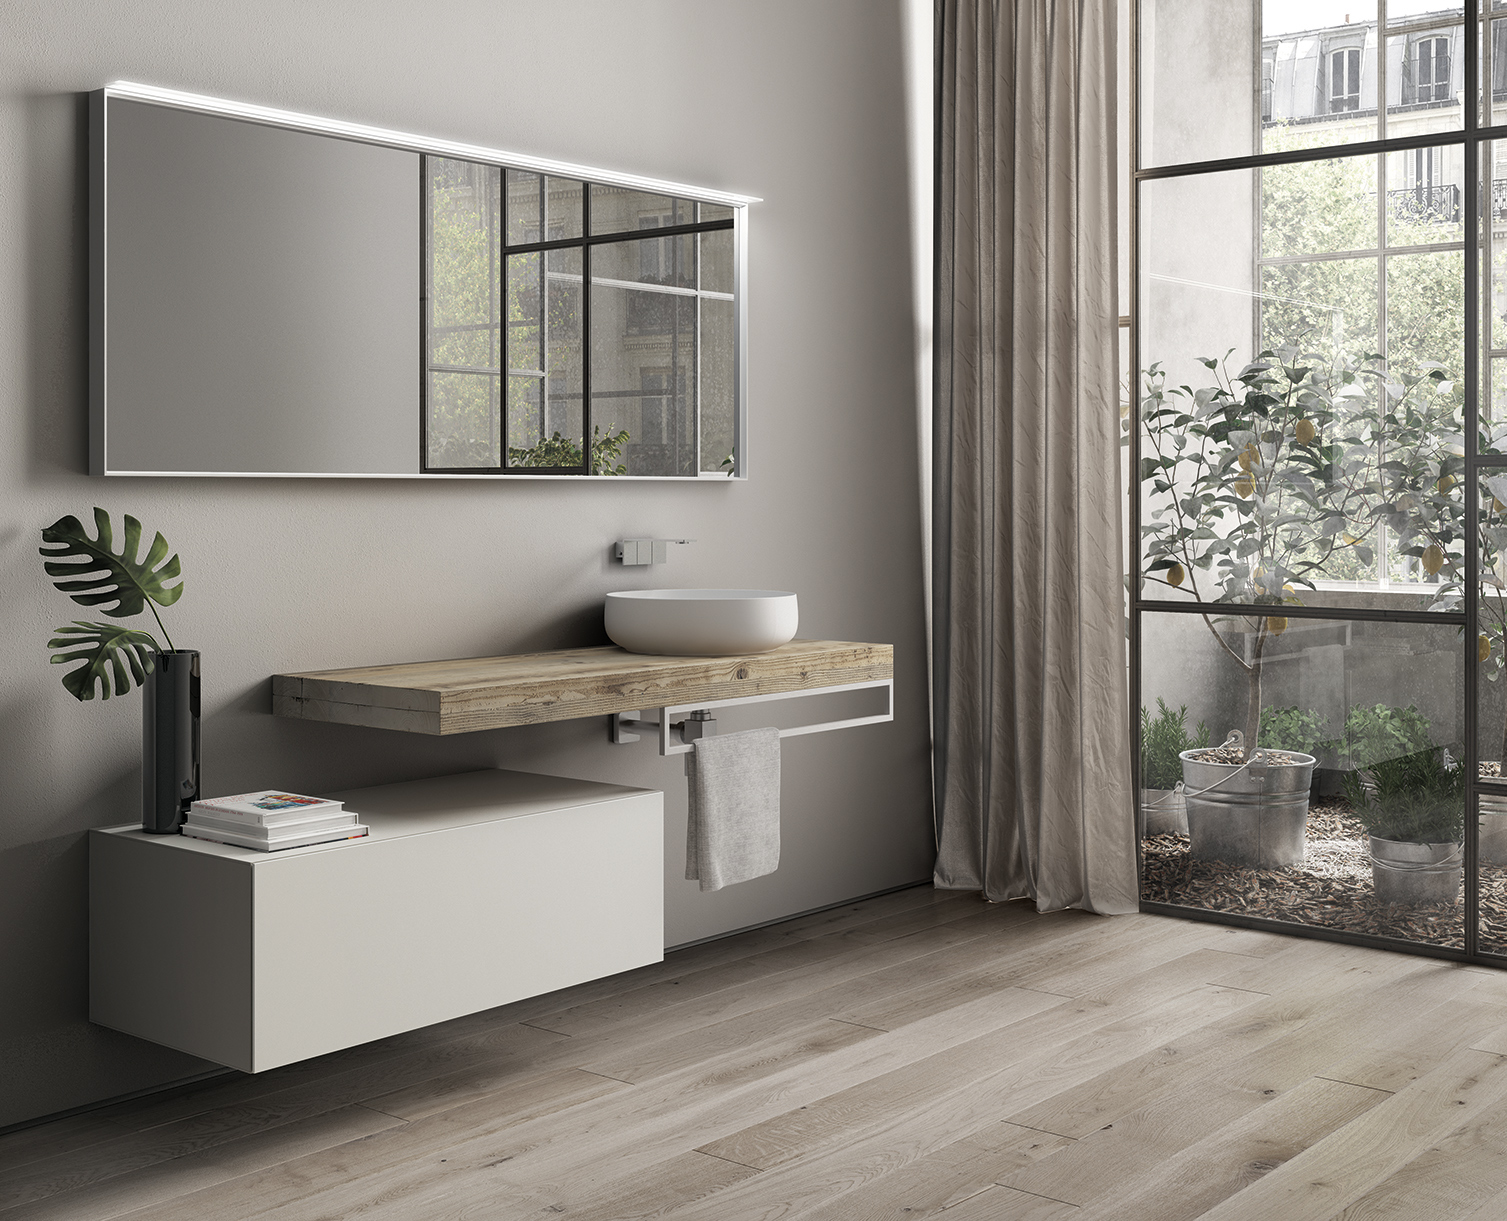 Top in legno l 39 arredo bagno di tendenza ideagroup blog for Top arredo